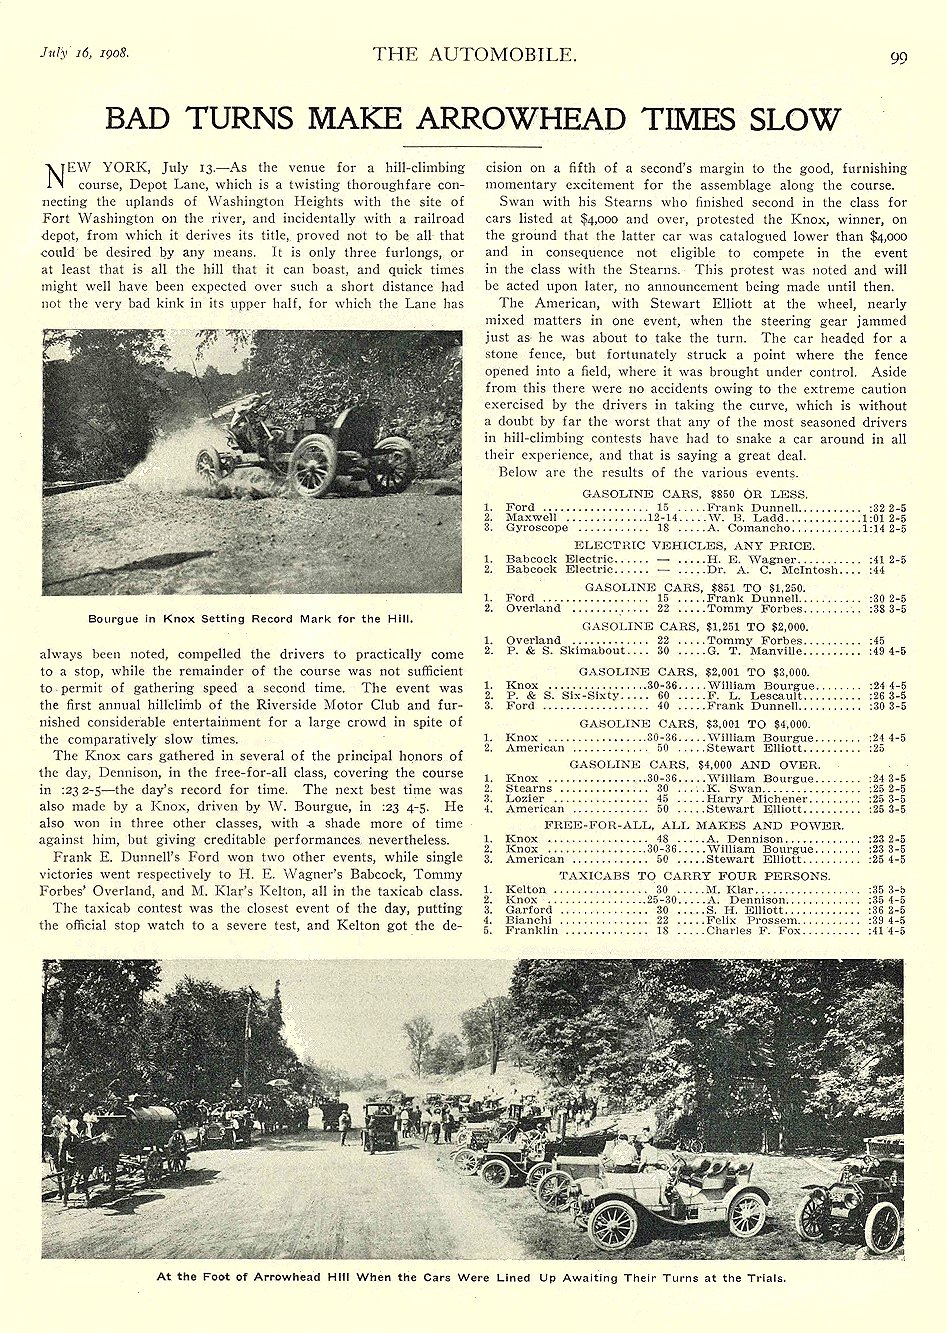 1908 7 16 BABCOCK Electric Racing Bad Turns Make Arrowhead Times Slow THE AUTOMOBILE July 16, 1908 University of Minnesota Library 8.75″x11.5″ page 99